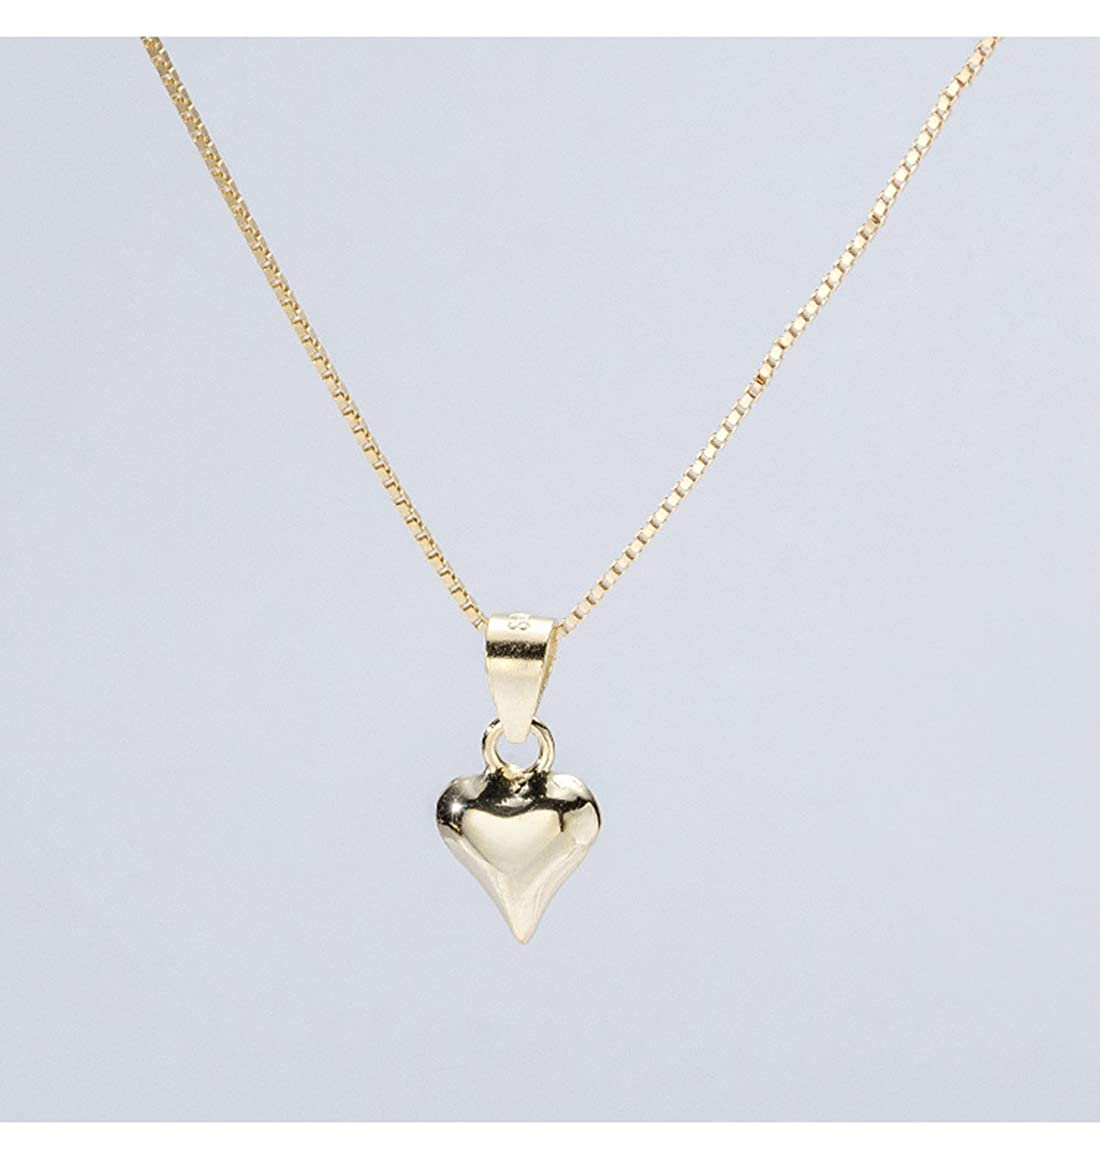 Yellow Gold FarryDream Genuine 925 Sterling Silver Tiny Love Heart Tennis Necklace for Women Teen Girls